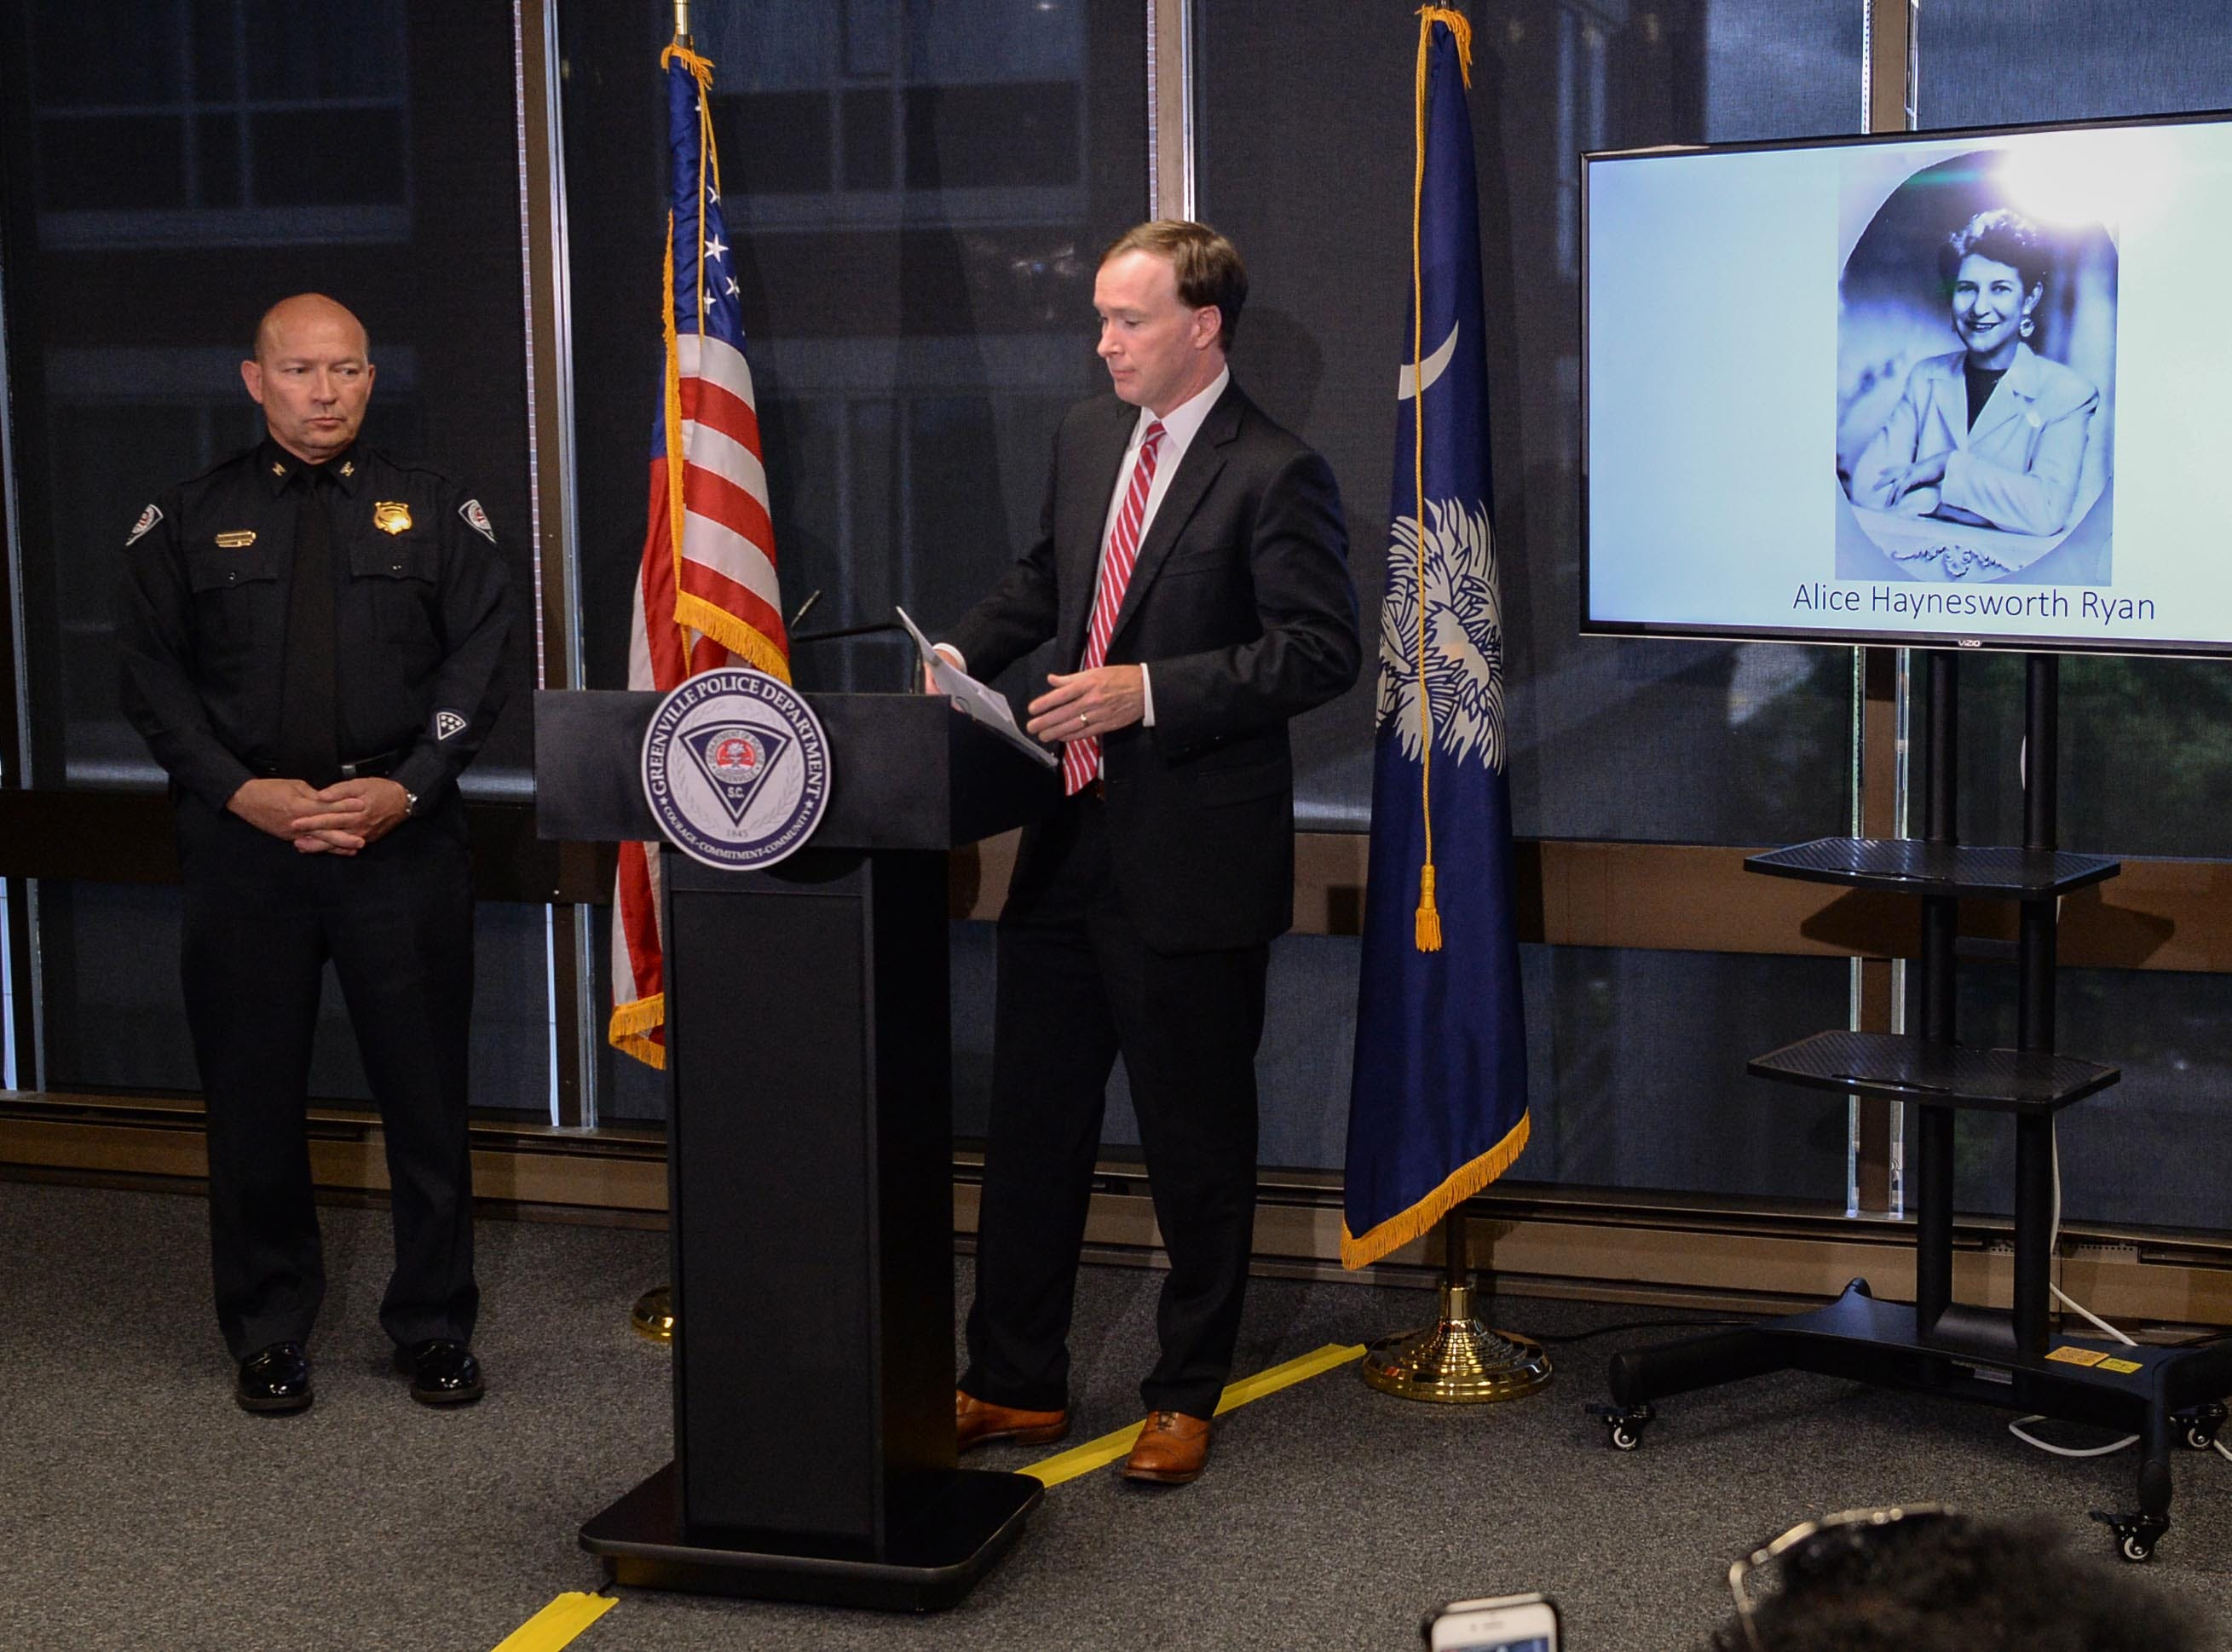 Greenville police Chief Ken Miller, left, stands near Thirteenth Circuit Solicitor Walt Wilkins talking about an arrest in the 1988 cold case homicide of Alice Haynesworth Ryan, during a city police announcement in Greenville Monday. Police arrested suspect Brian Keith Munns.